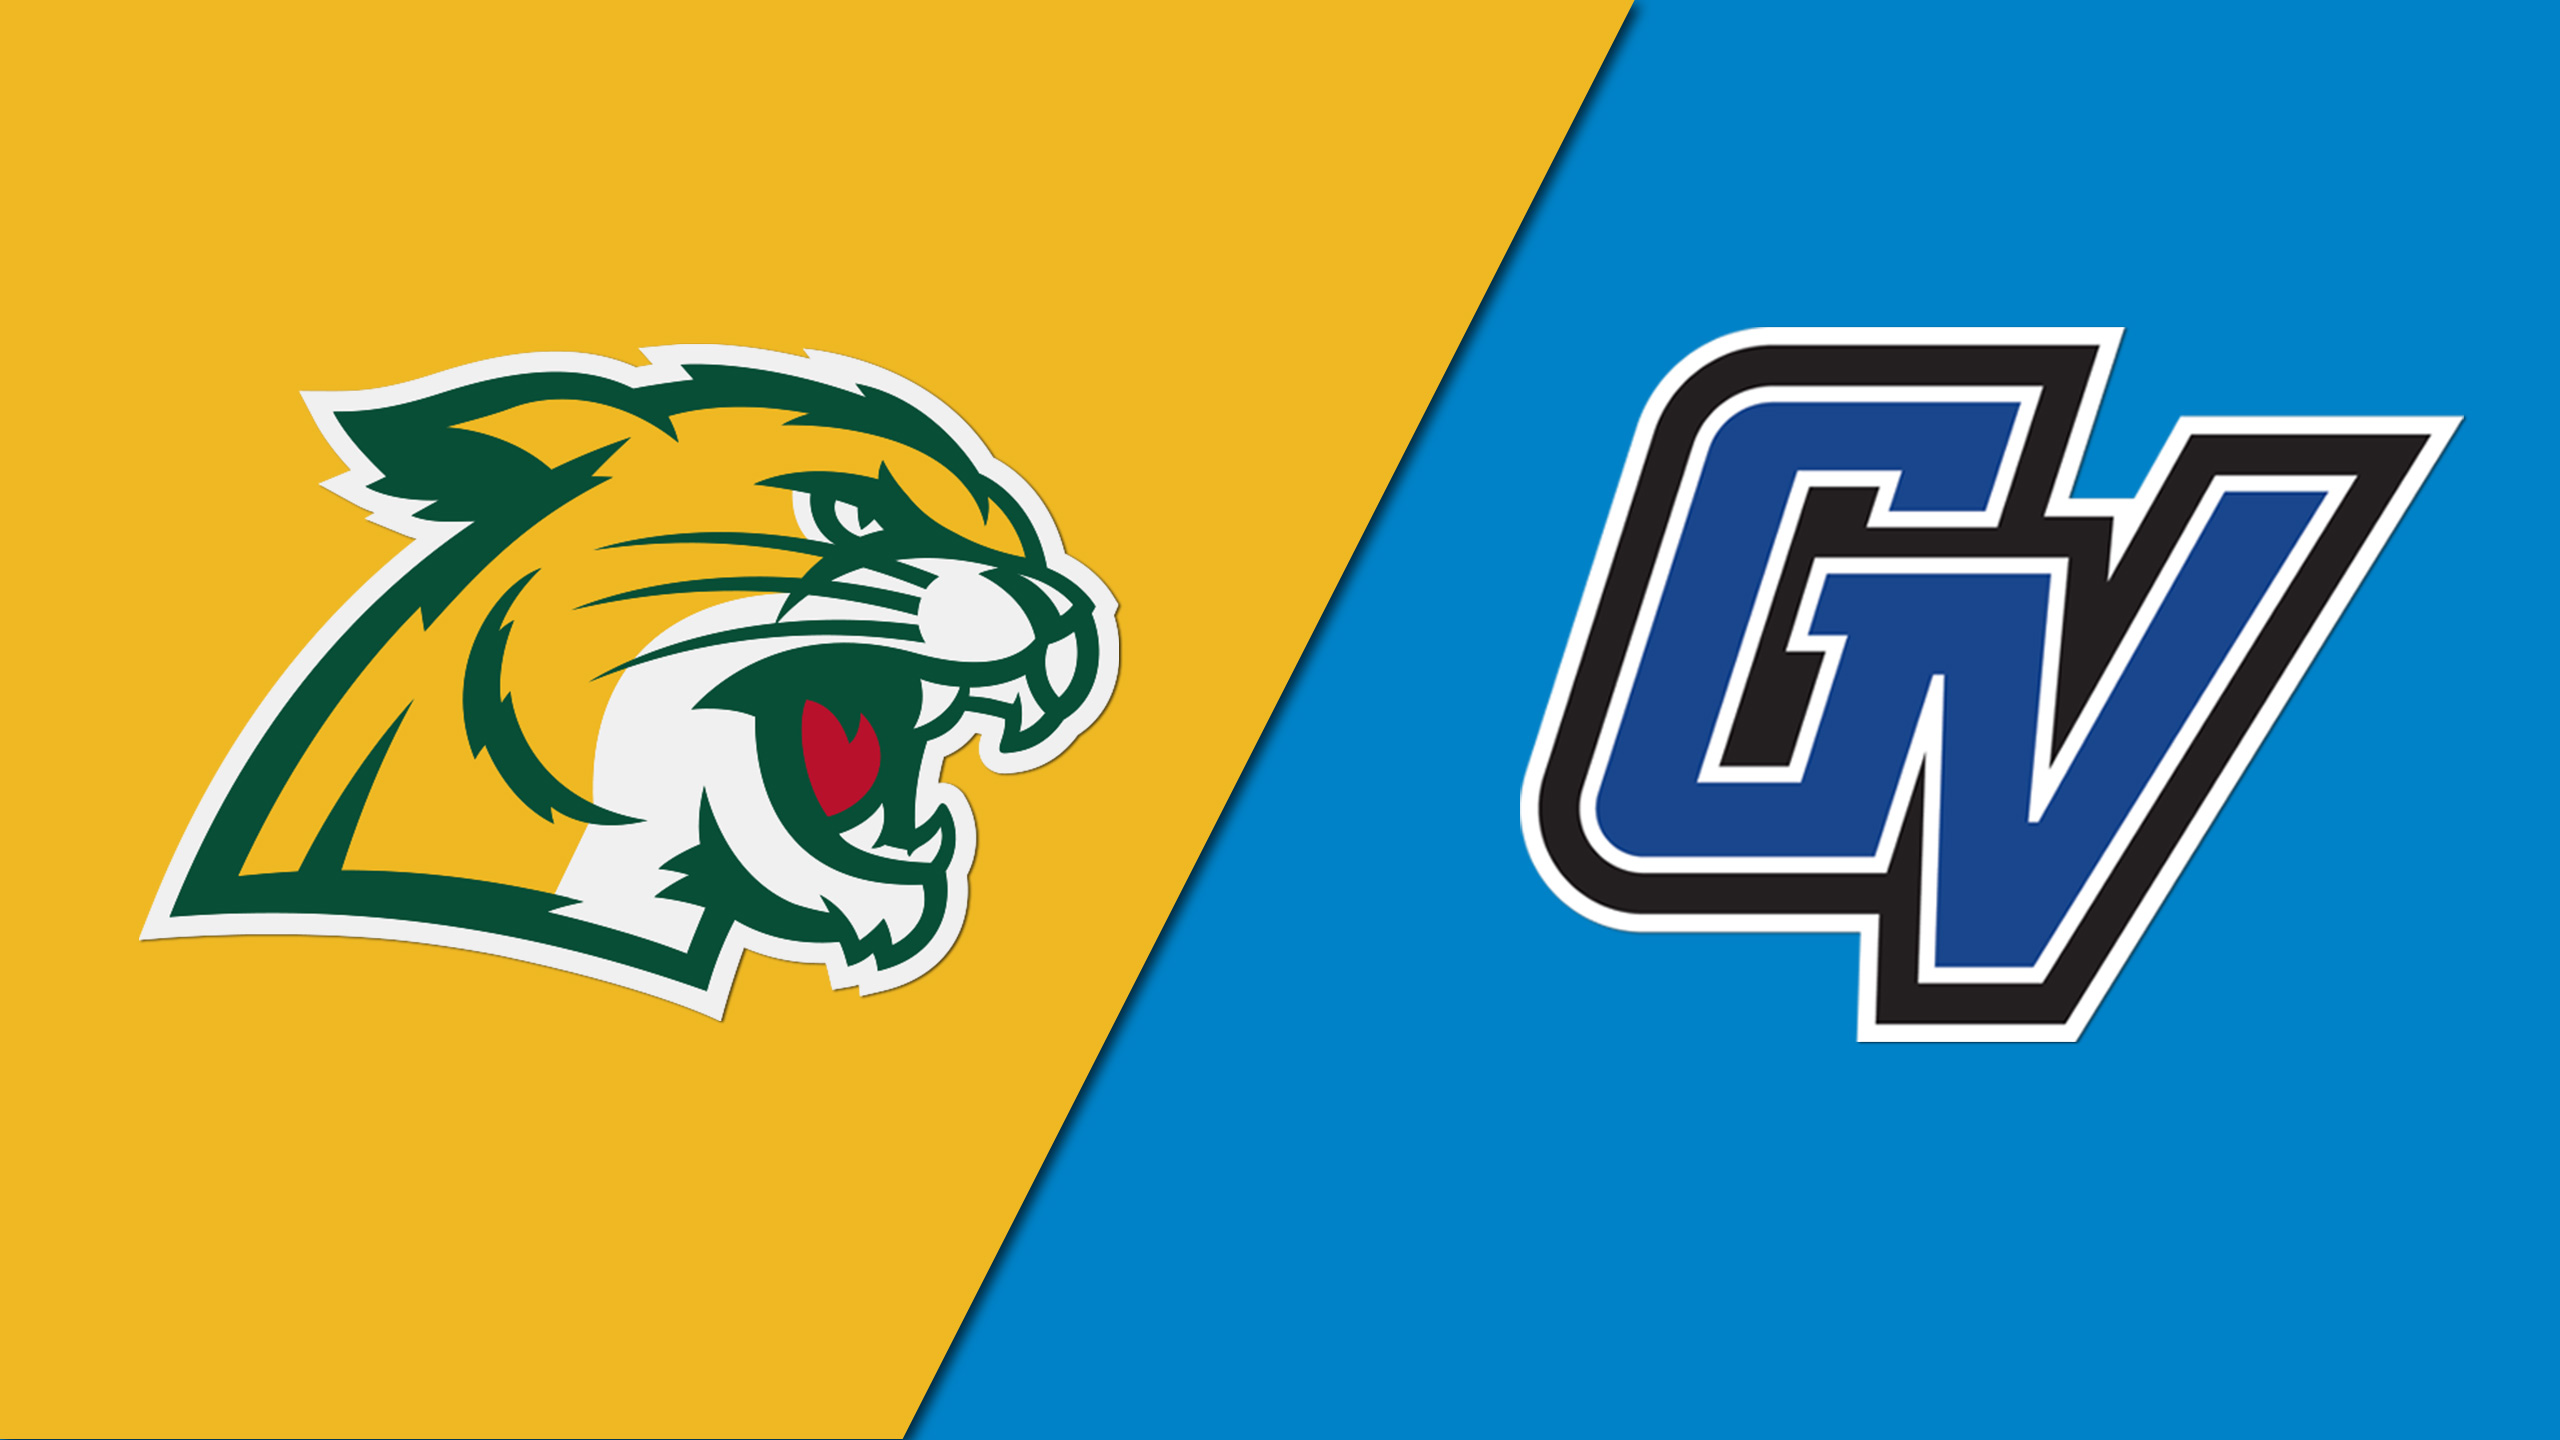 Northern Michigan vs. Grand Valley State